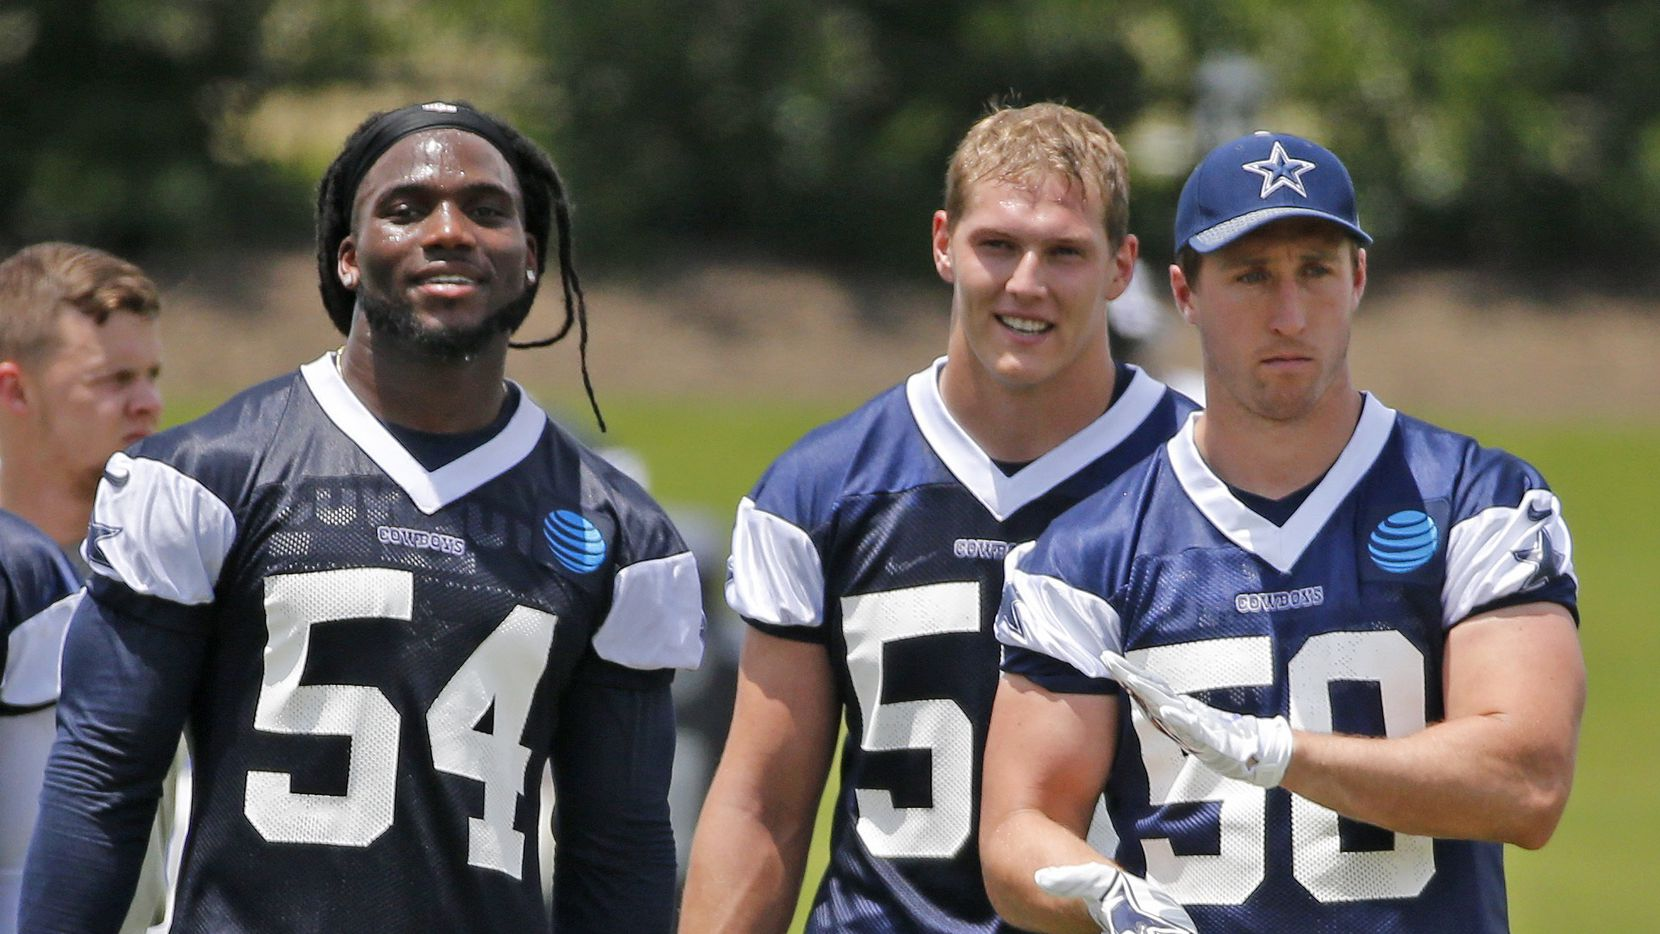 Dallas Cowboys linebackers Jaylon Smith (54), Leighton Vander Esch (55) and Sean Lee (50) are pictured together during Dallas Cowboys OTA football practice at the Star in Frisco on Wednesday, May 23, 2018. (Louis DeLuca/The Dallas Morning News)